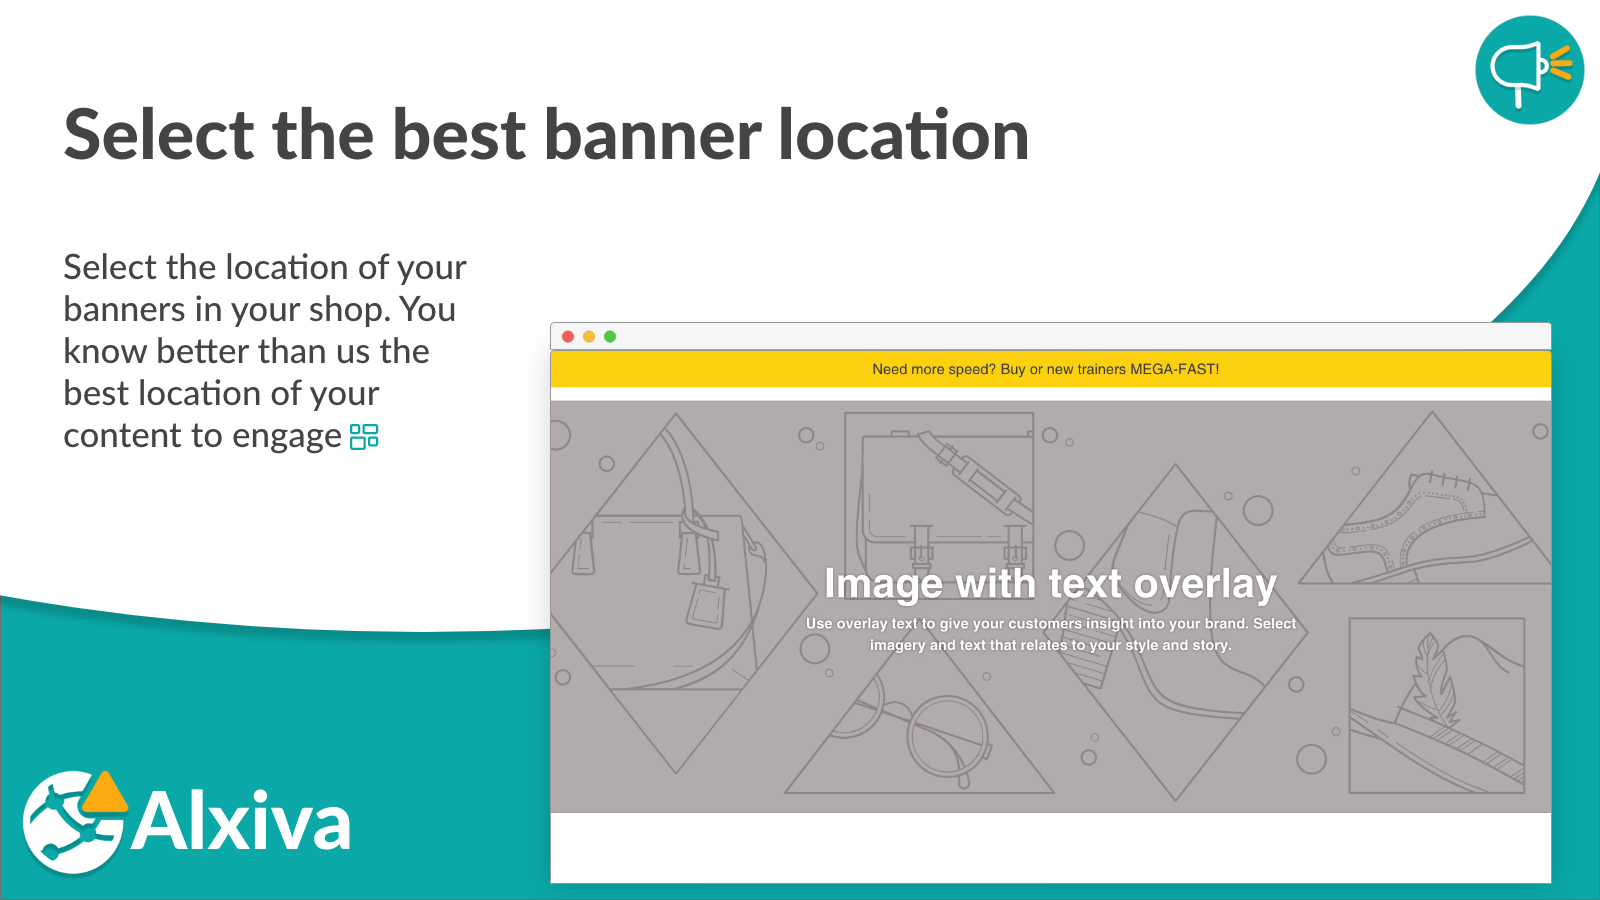 Select the best banner location